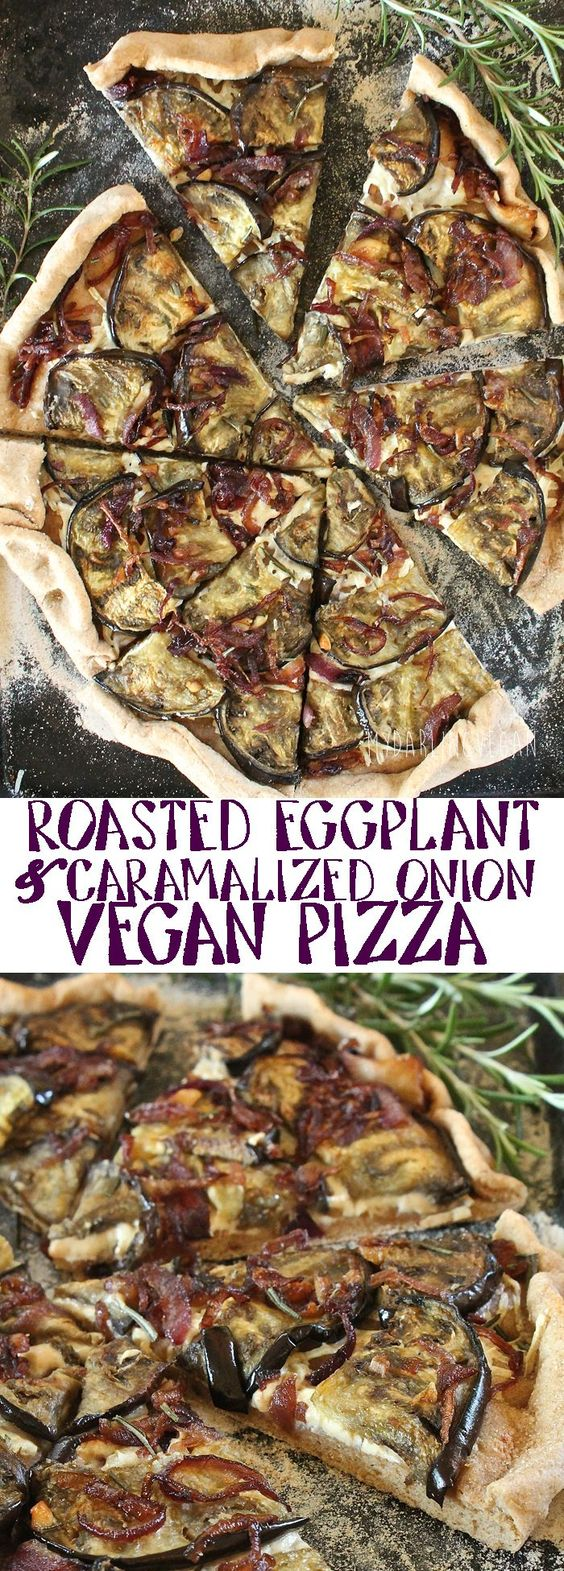 Eggplant Pizza with Caramelized Onion